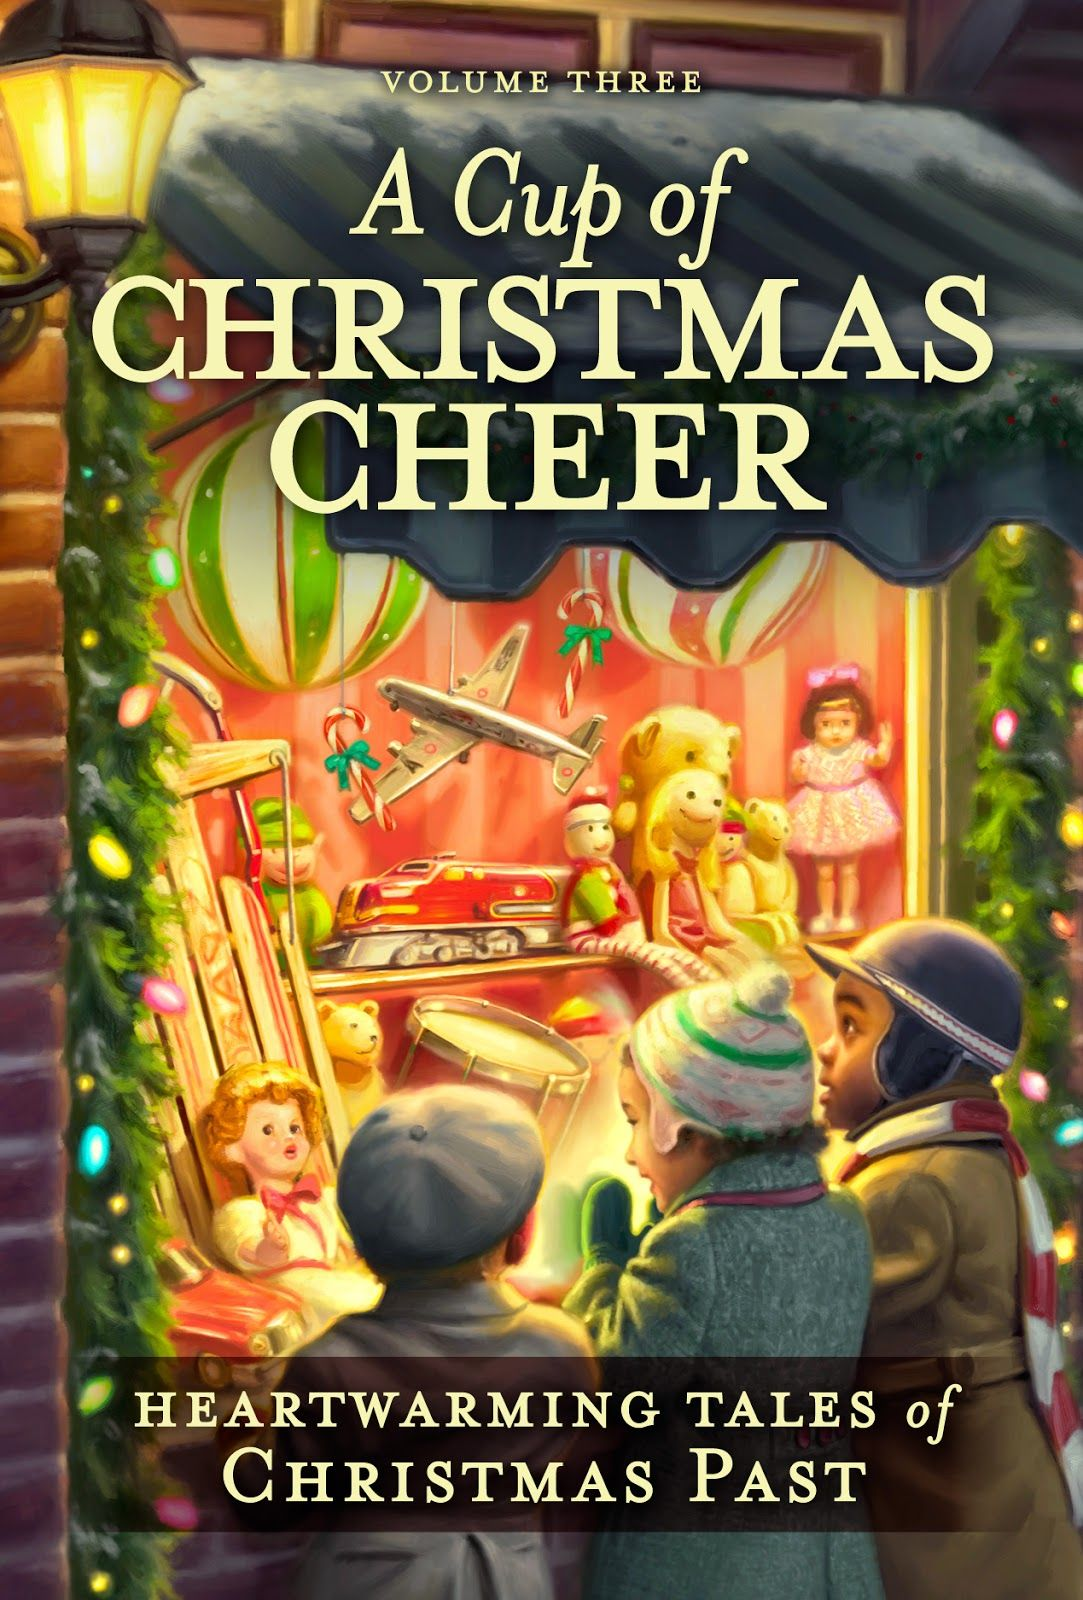 A Cup of Christmas Cheer Debbie Lynne Costello Livres